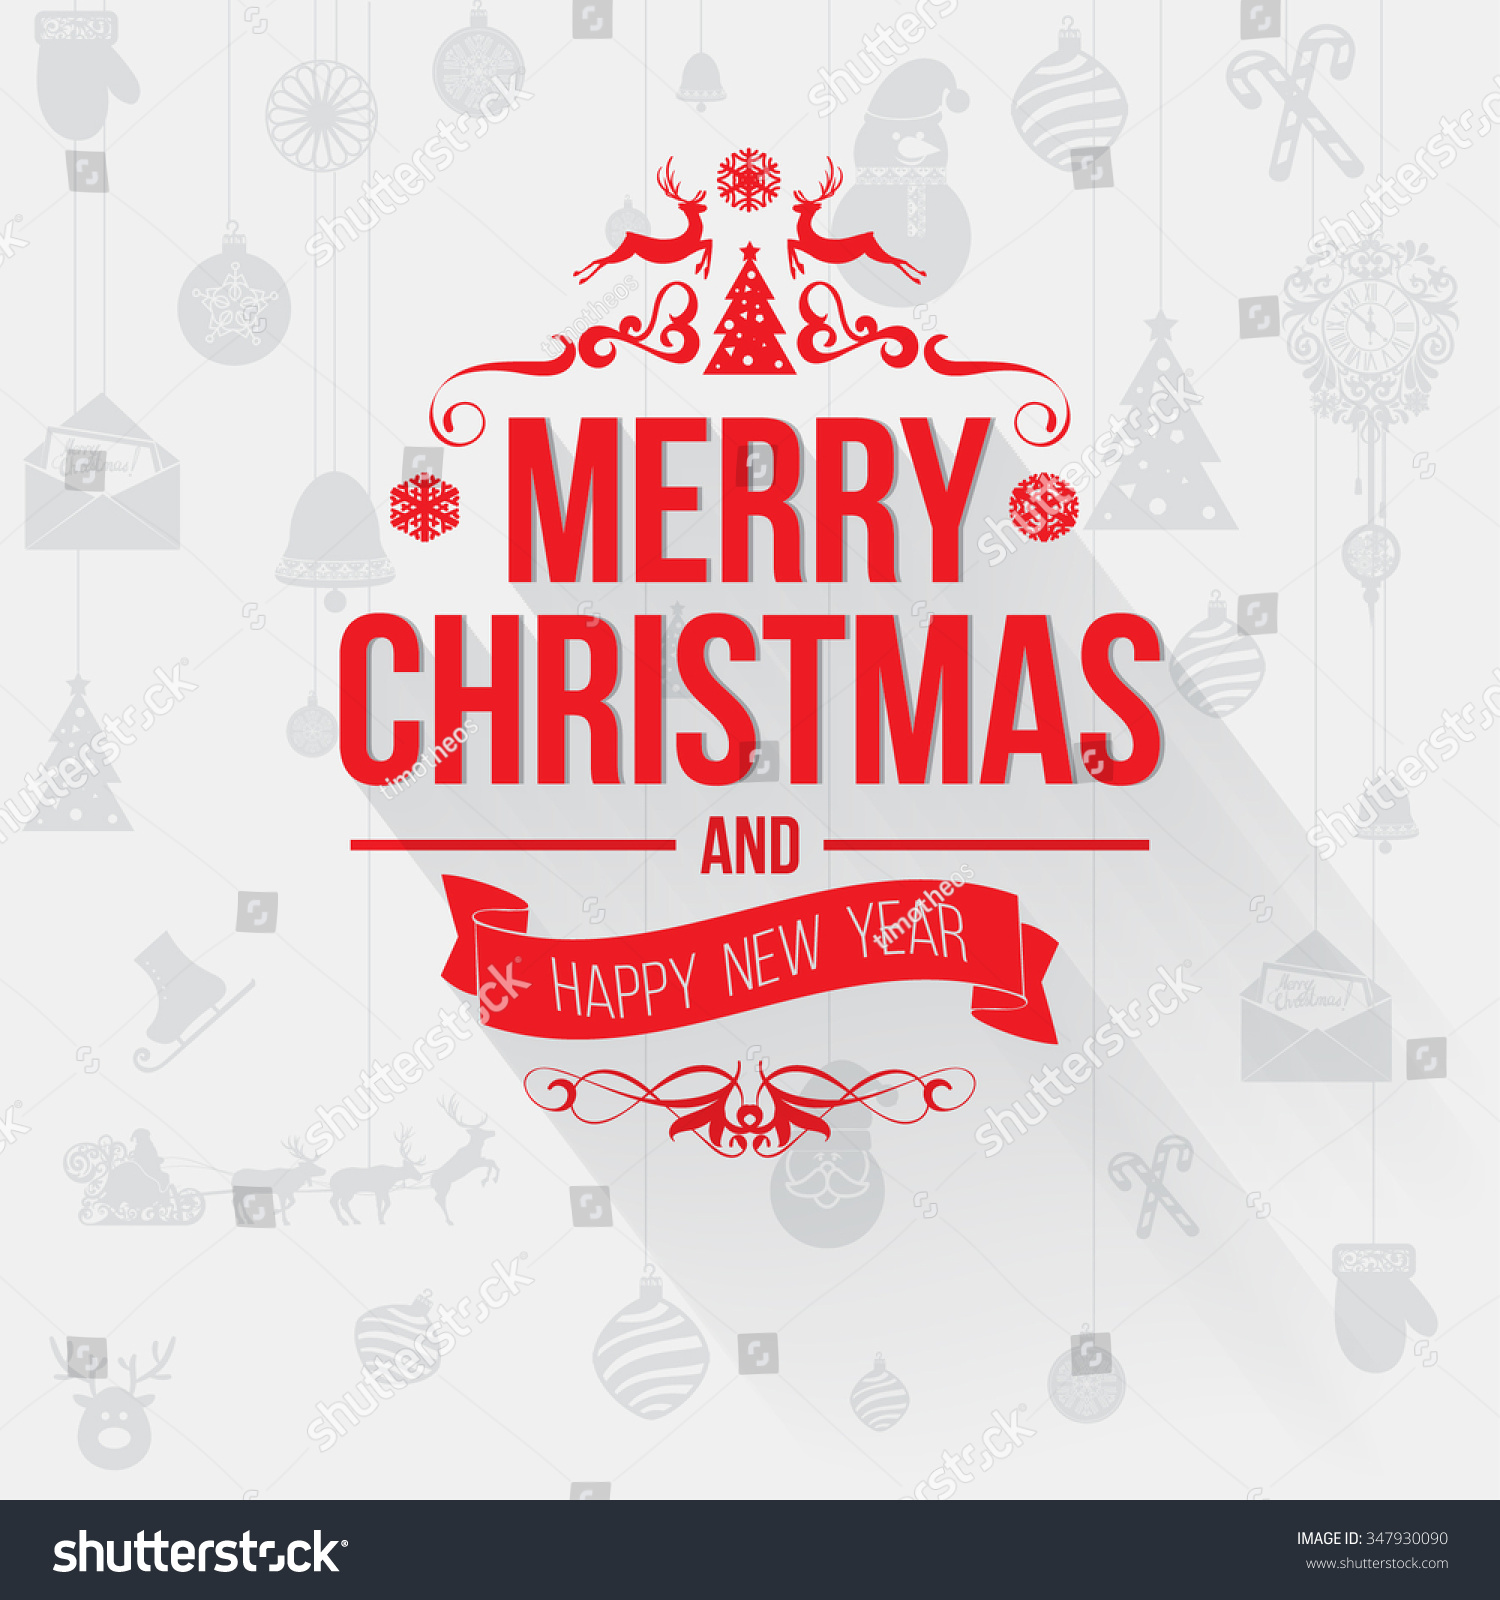 Merry Christmas Greetings Card Red Letters Stock Vector Royalty